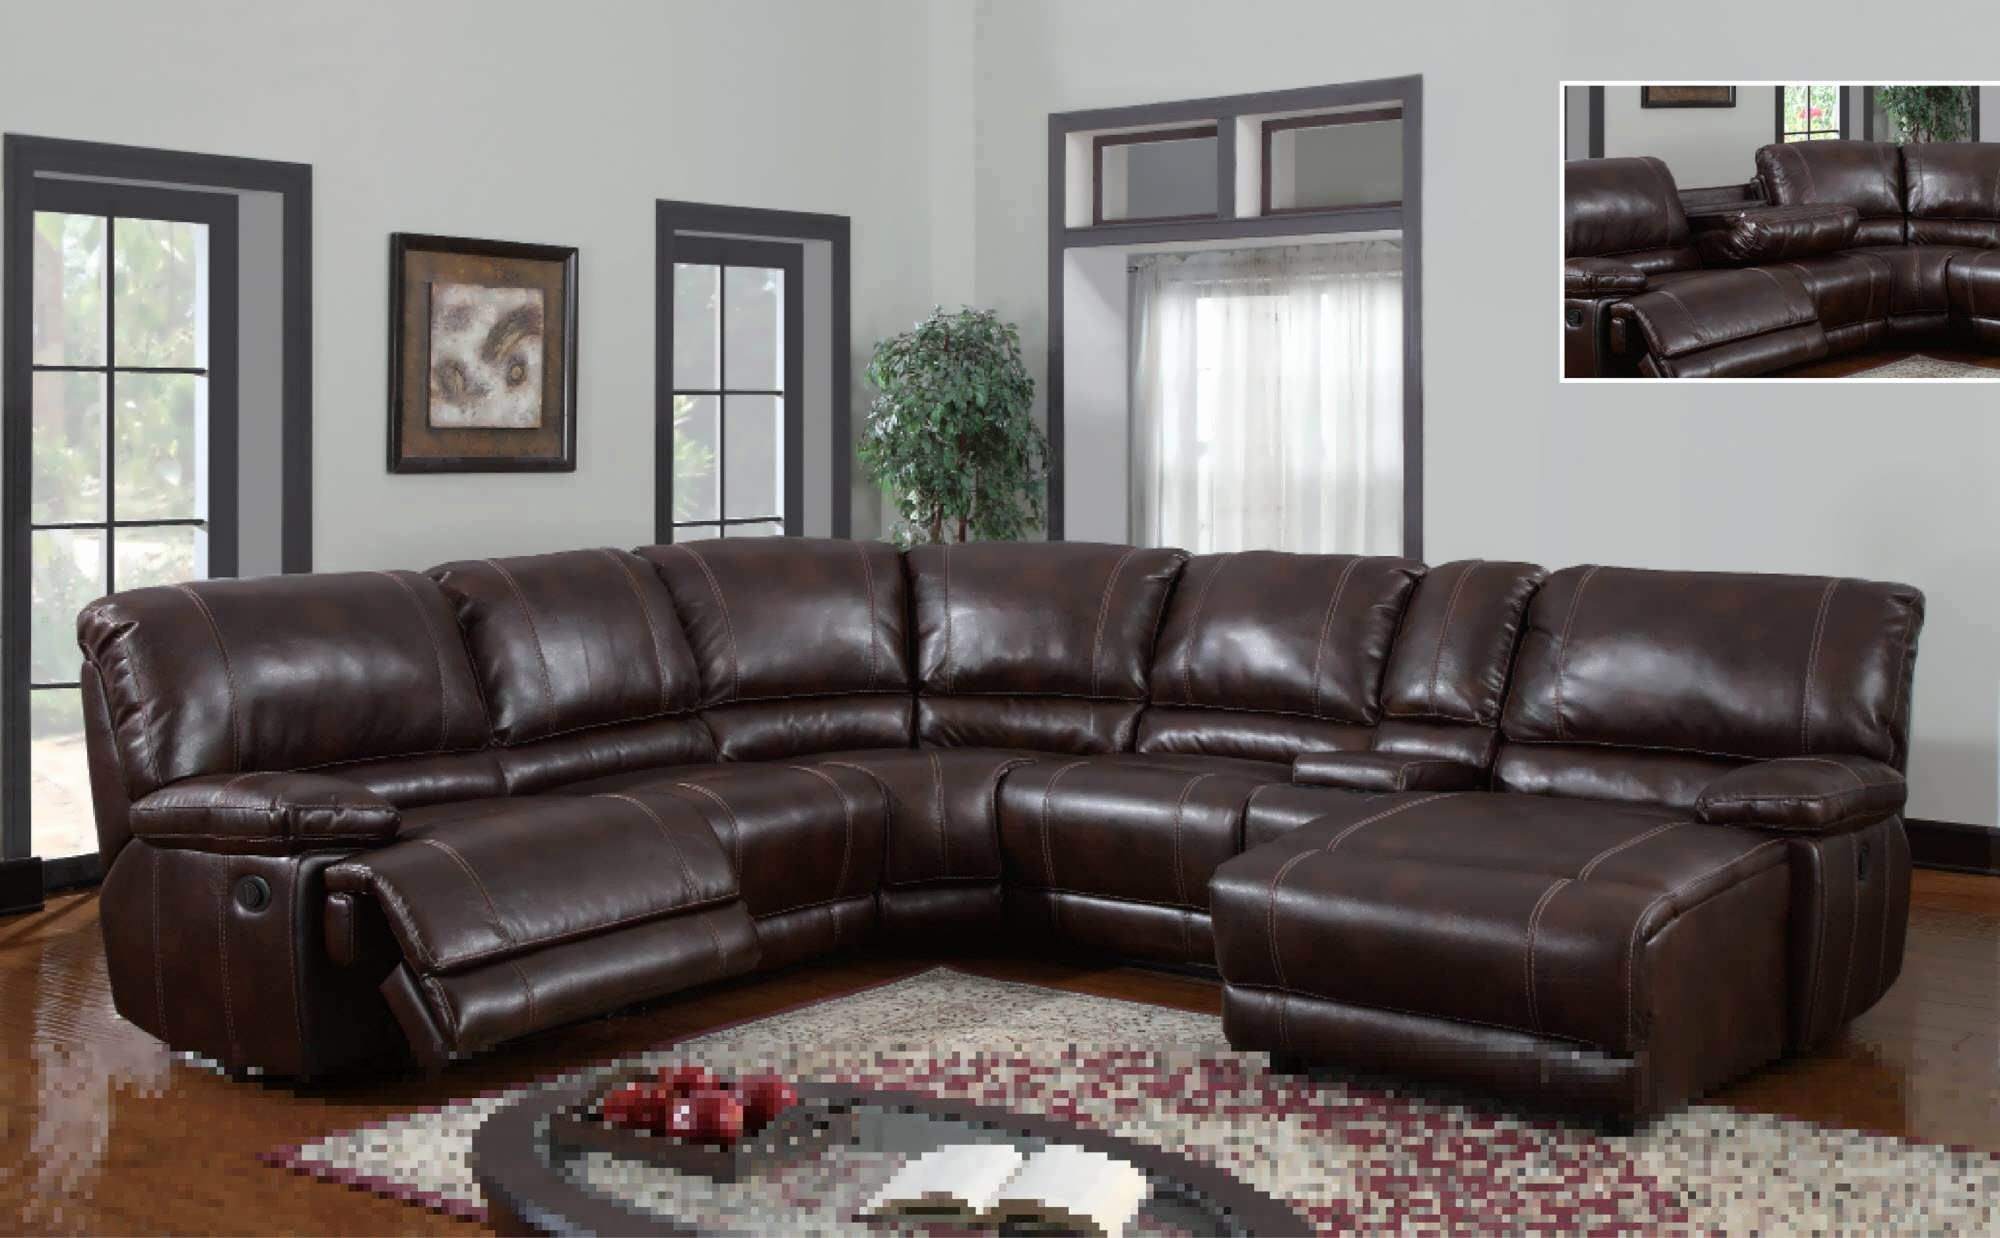 Best Of Burgundy Sectional sofa Pics Burgundy